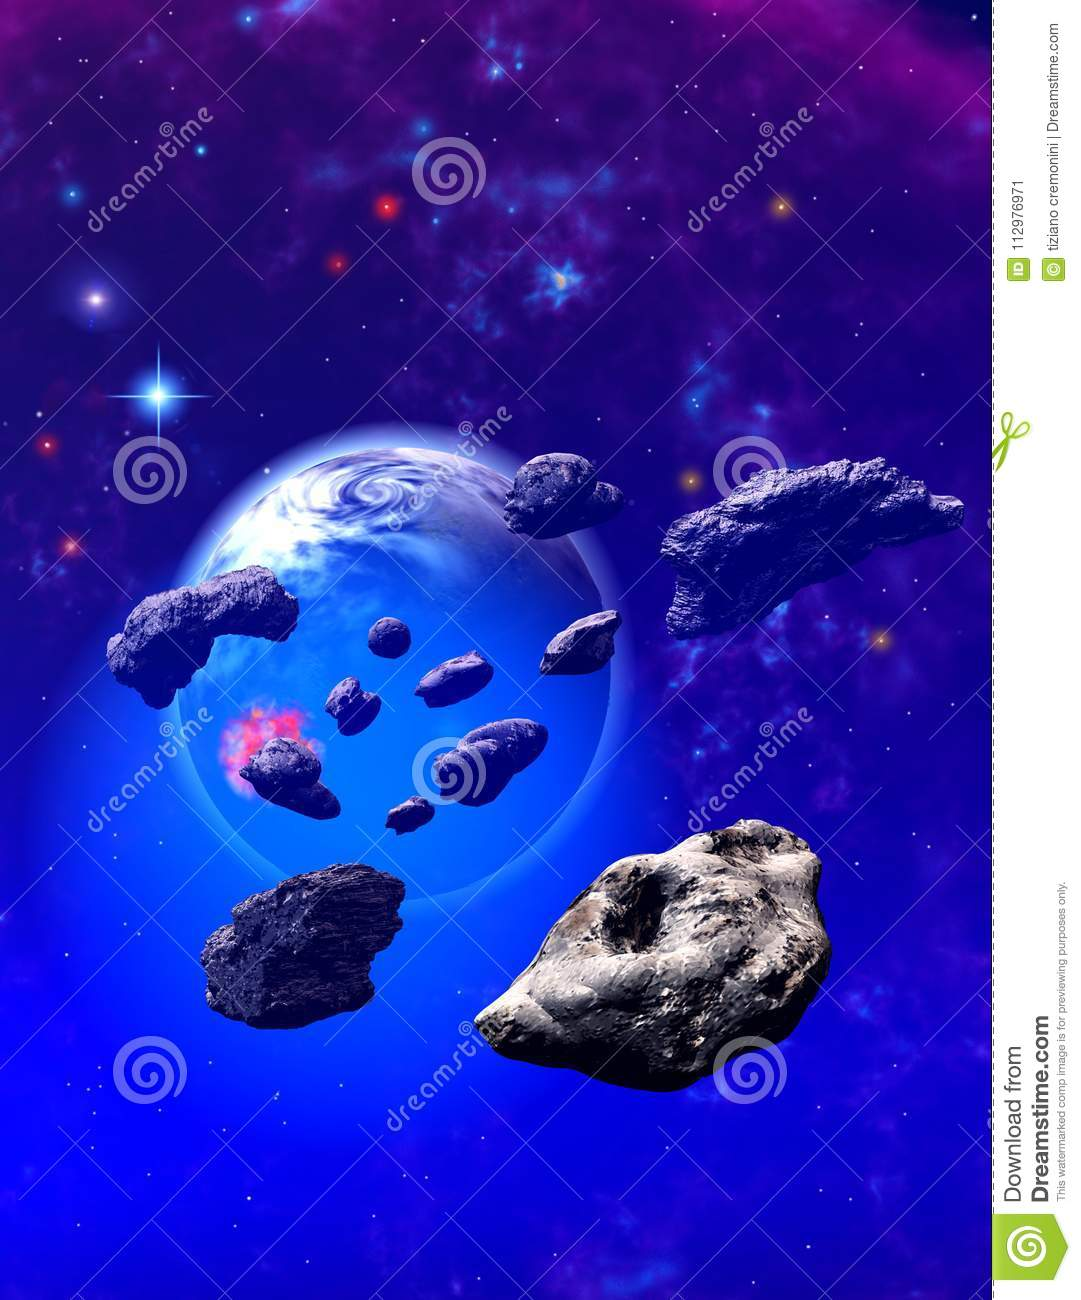 Asteroids around an alien blue planet